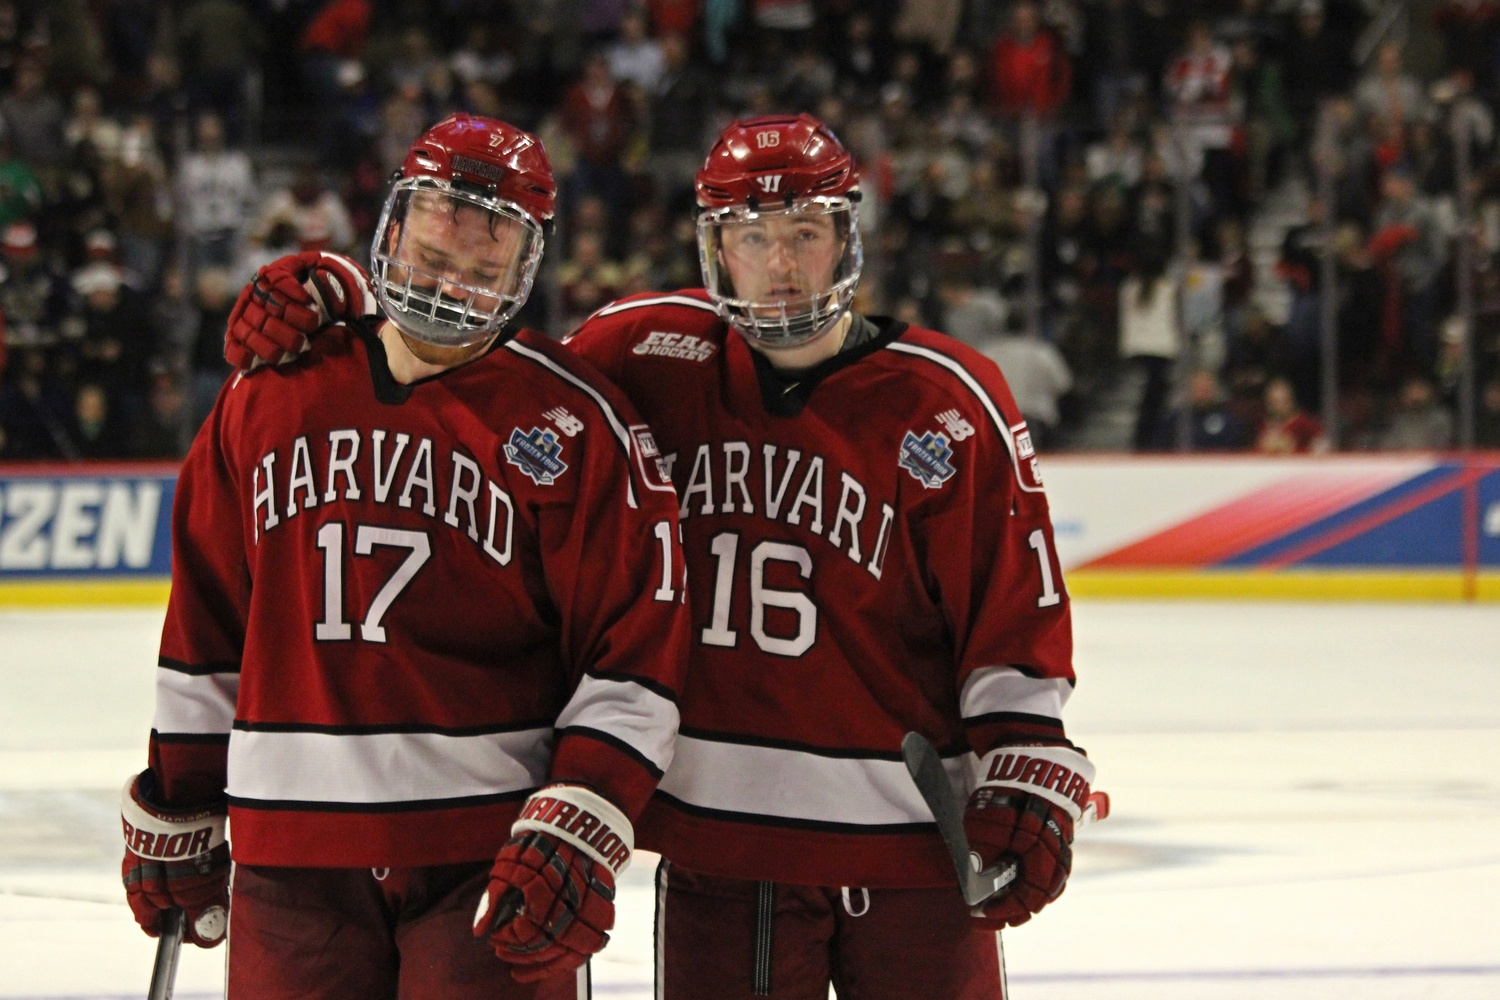 Harvard's Sean Malone and Ryan Donato tearfully exit the ice following the Crimson's 2-1 loss to Minnesota-Duluth in the Frozen Four Tournament.